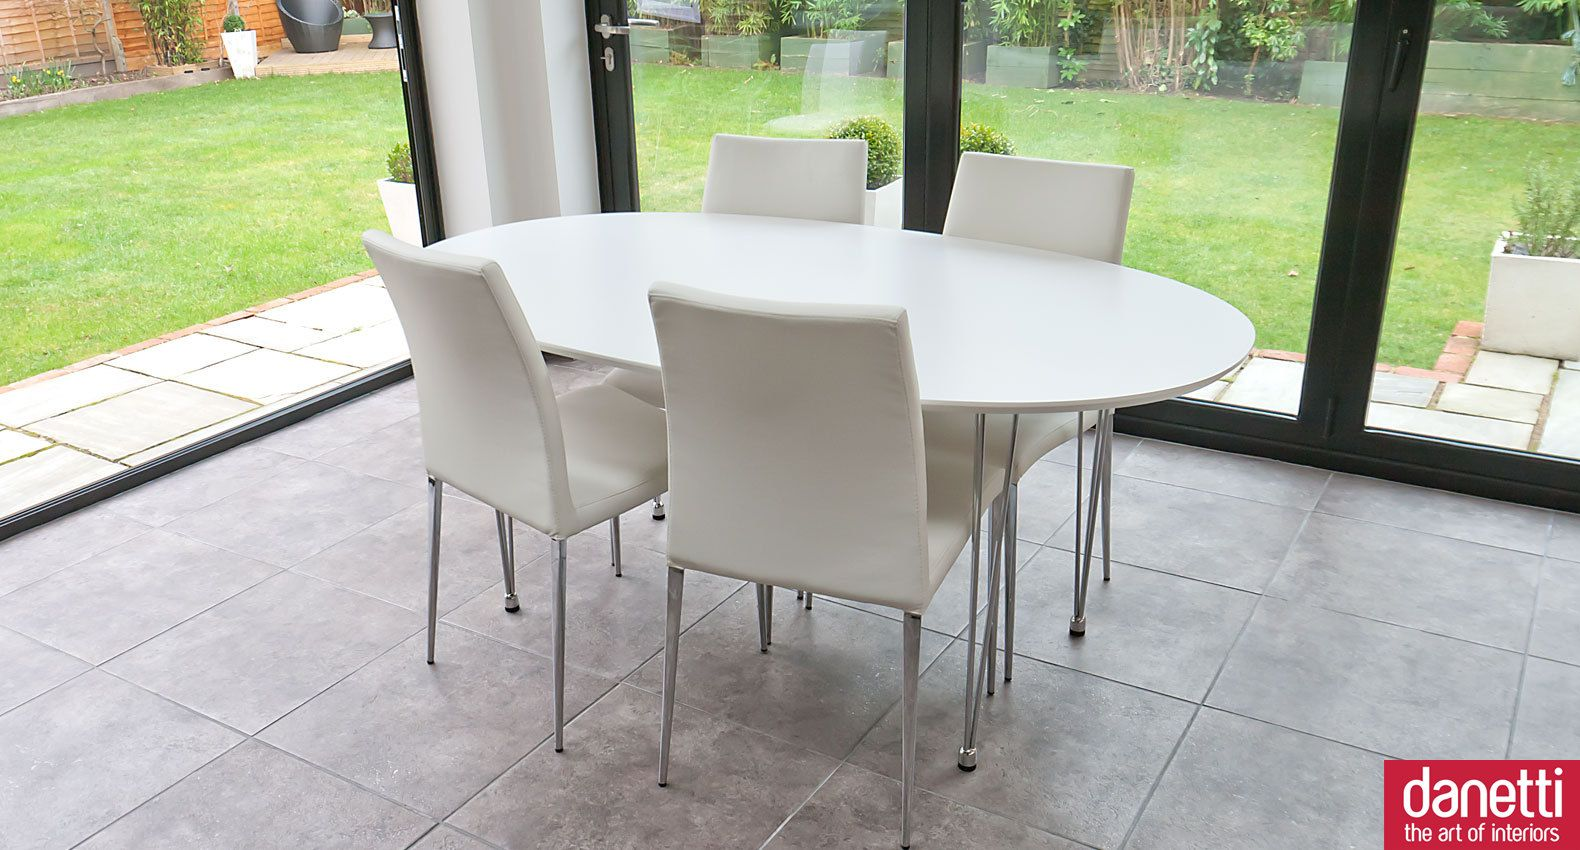 The Modern Ellie White Oval Dining Table Has A Smooth Oval Shape Enchanting White Oval Dining Room Table 2018